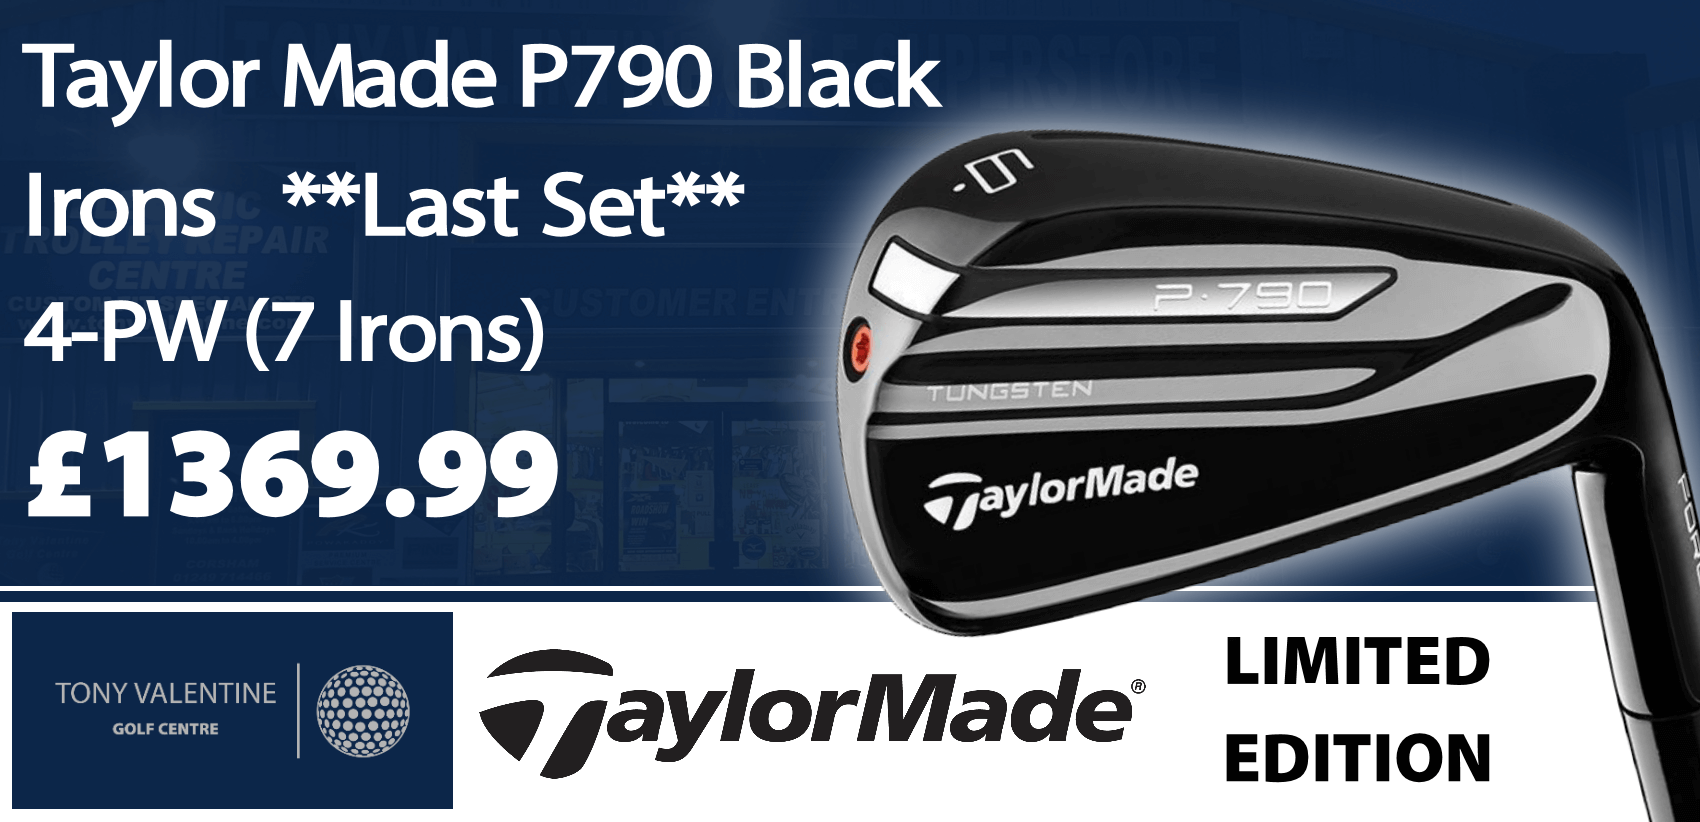 Limited Edition TaylorMade P790 Black Irons